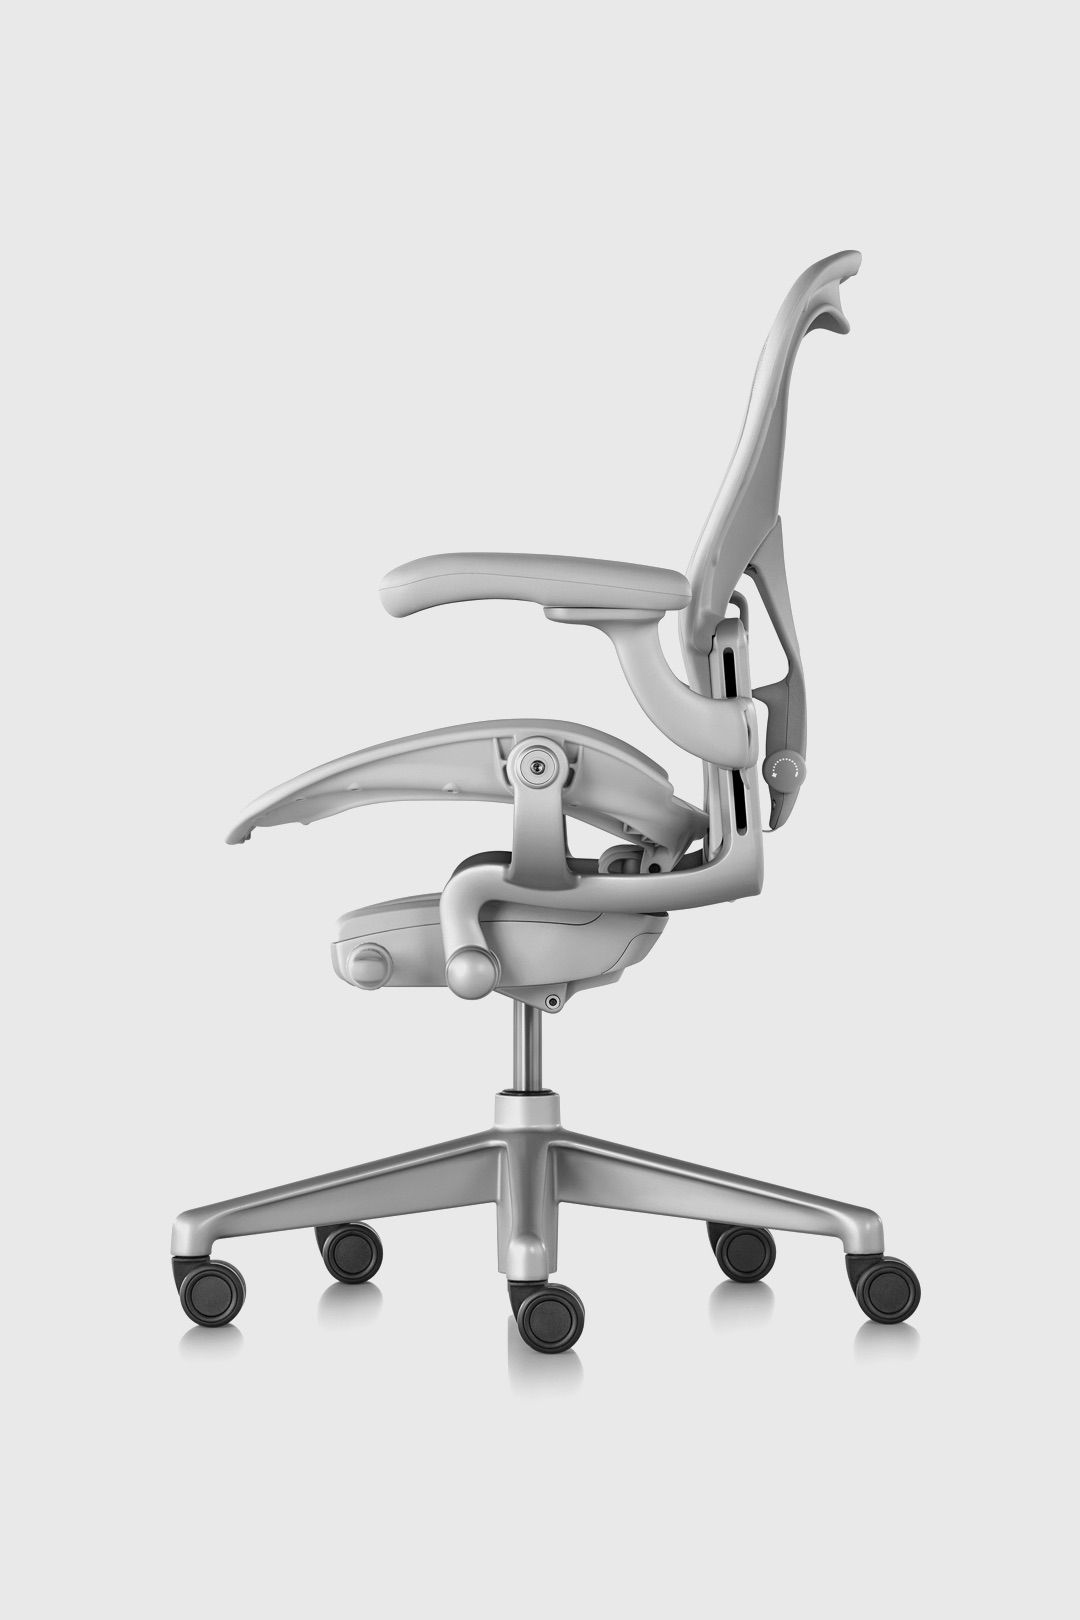 Famous For Supporting The Widest Range Of The Human Form, The Aeron Office  Chair Has